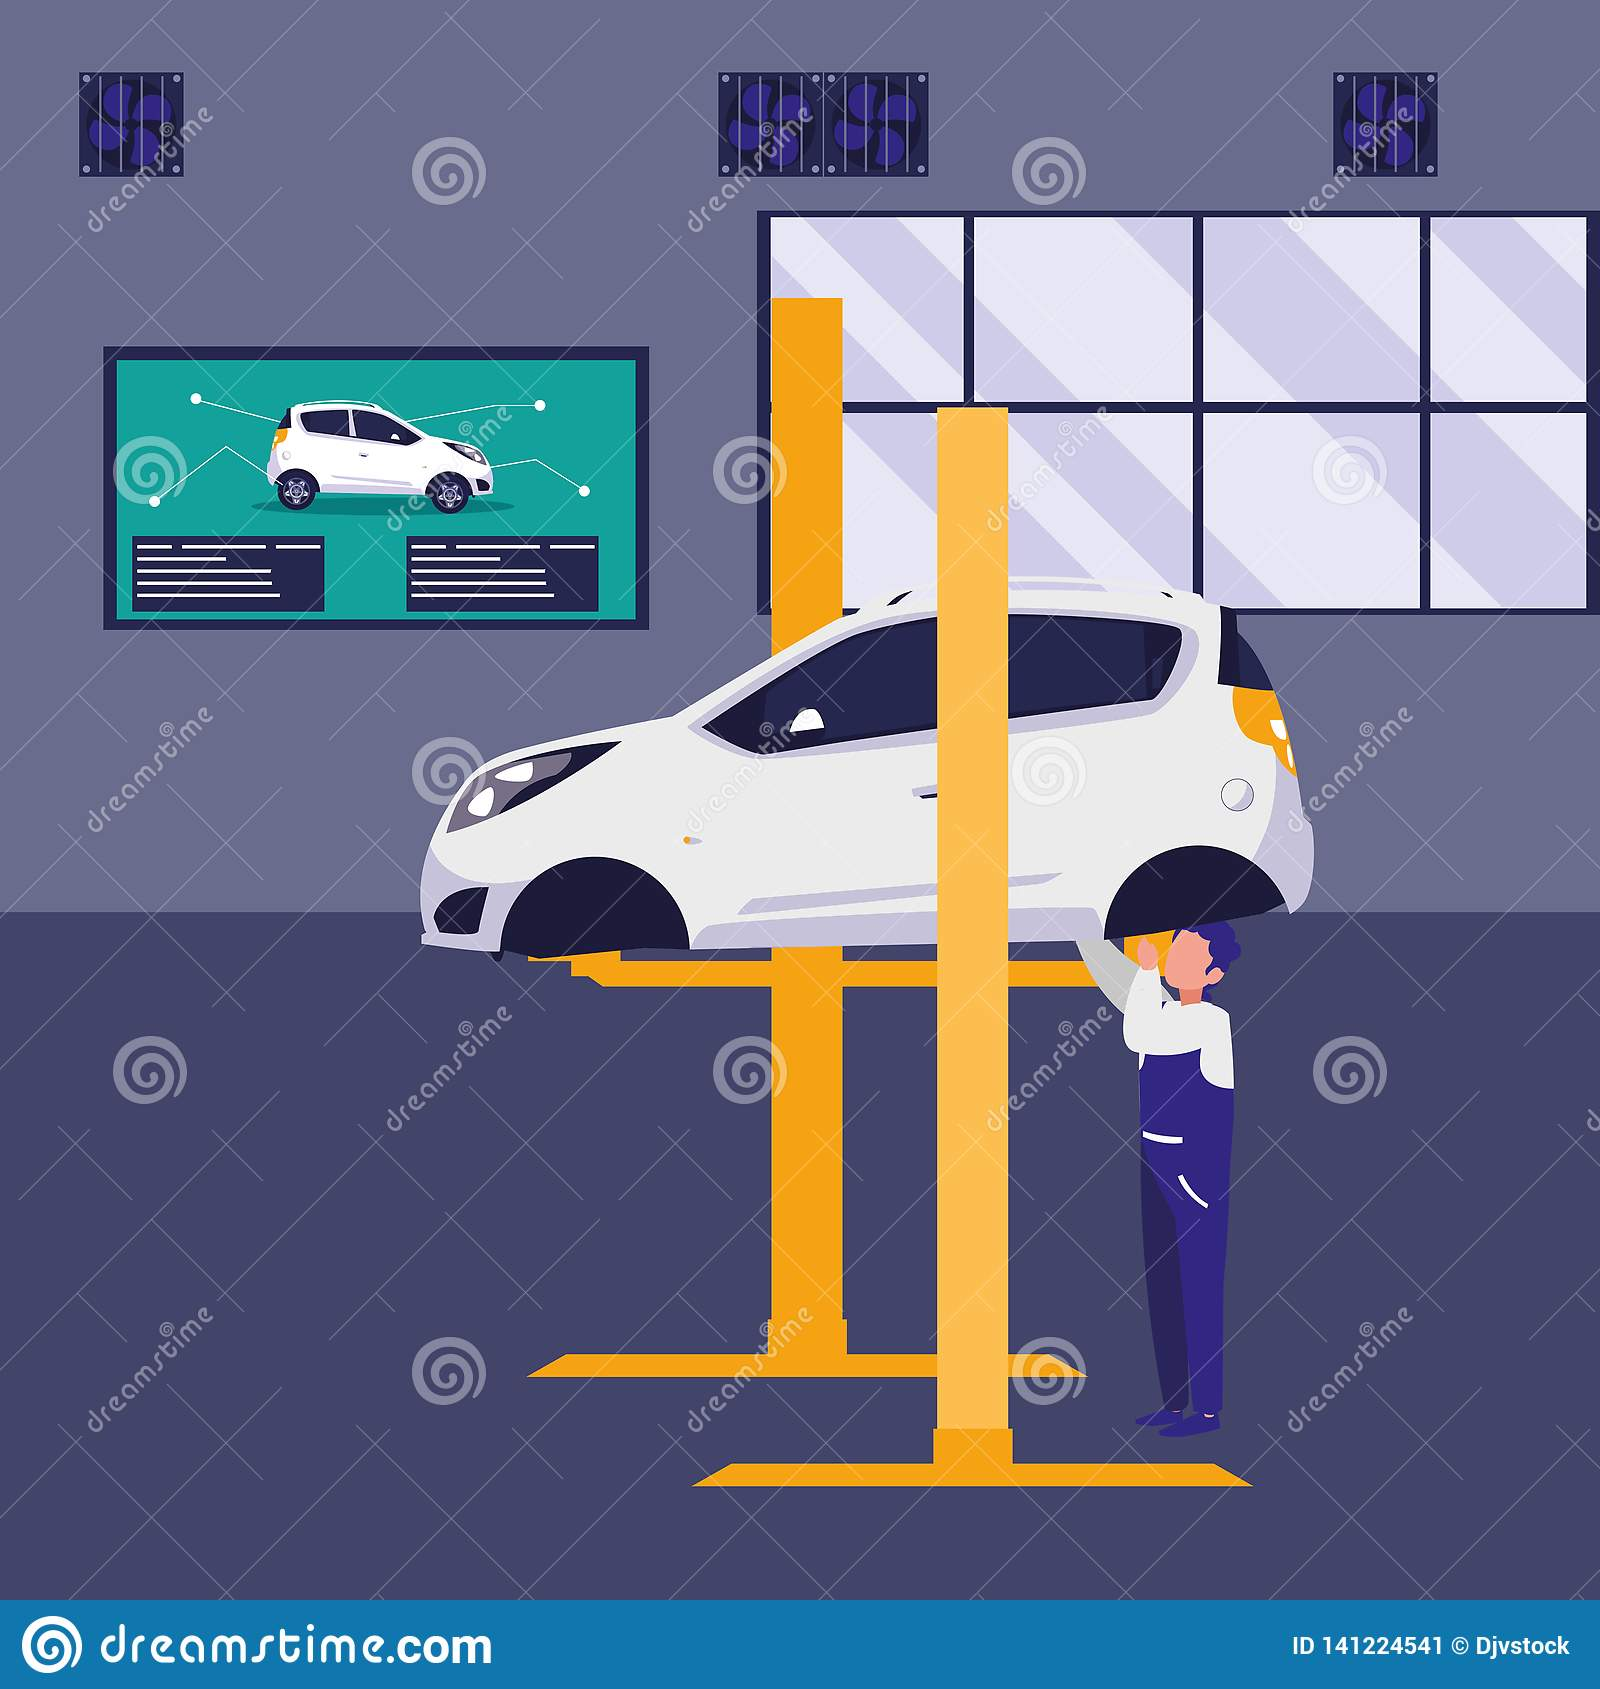 Mechanic Worker With Car In Platform Stock Vector - Illustration of